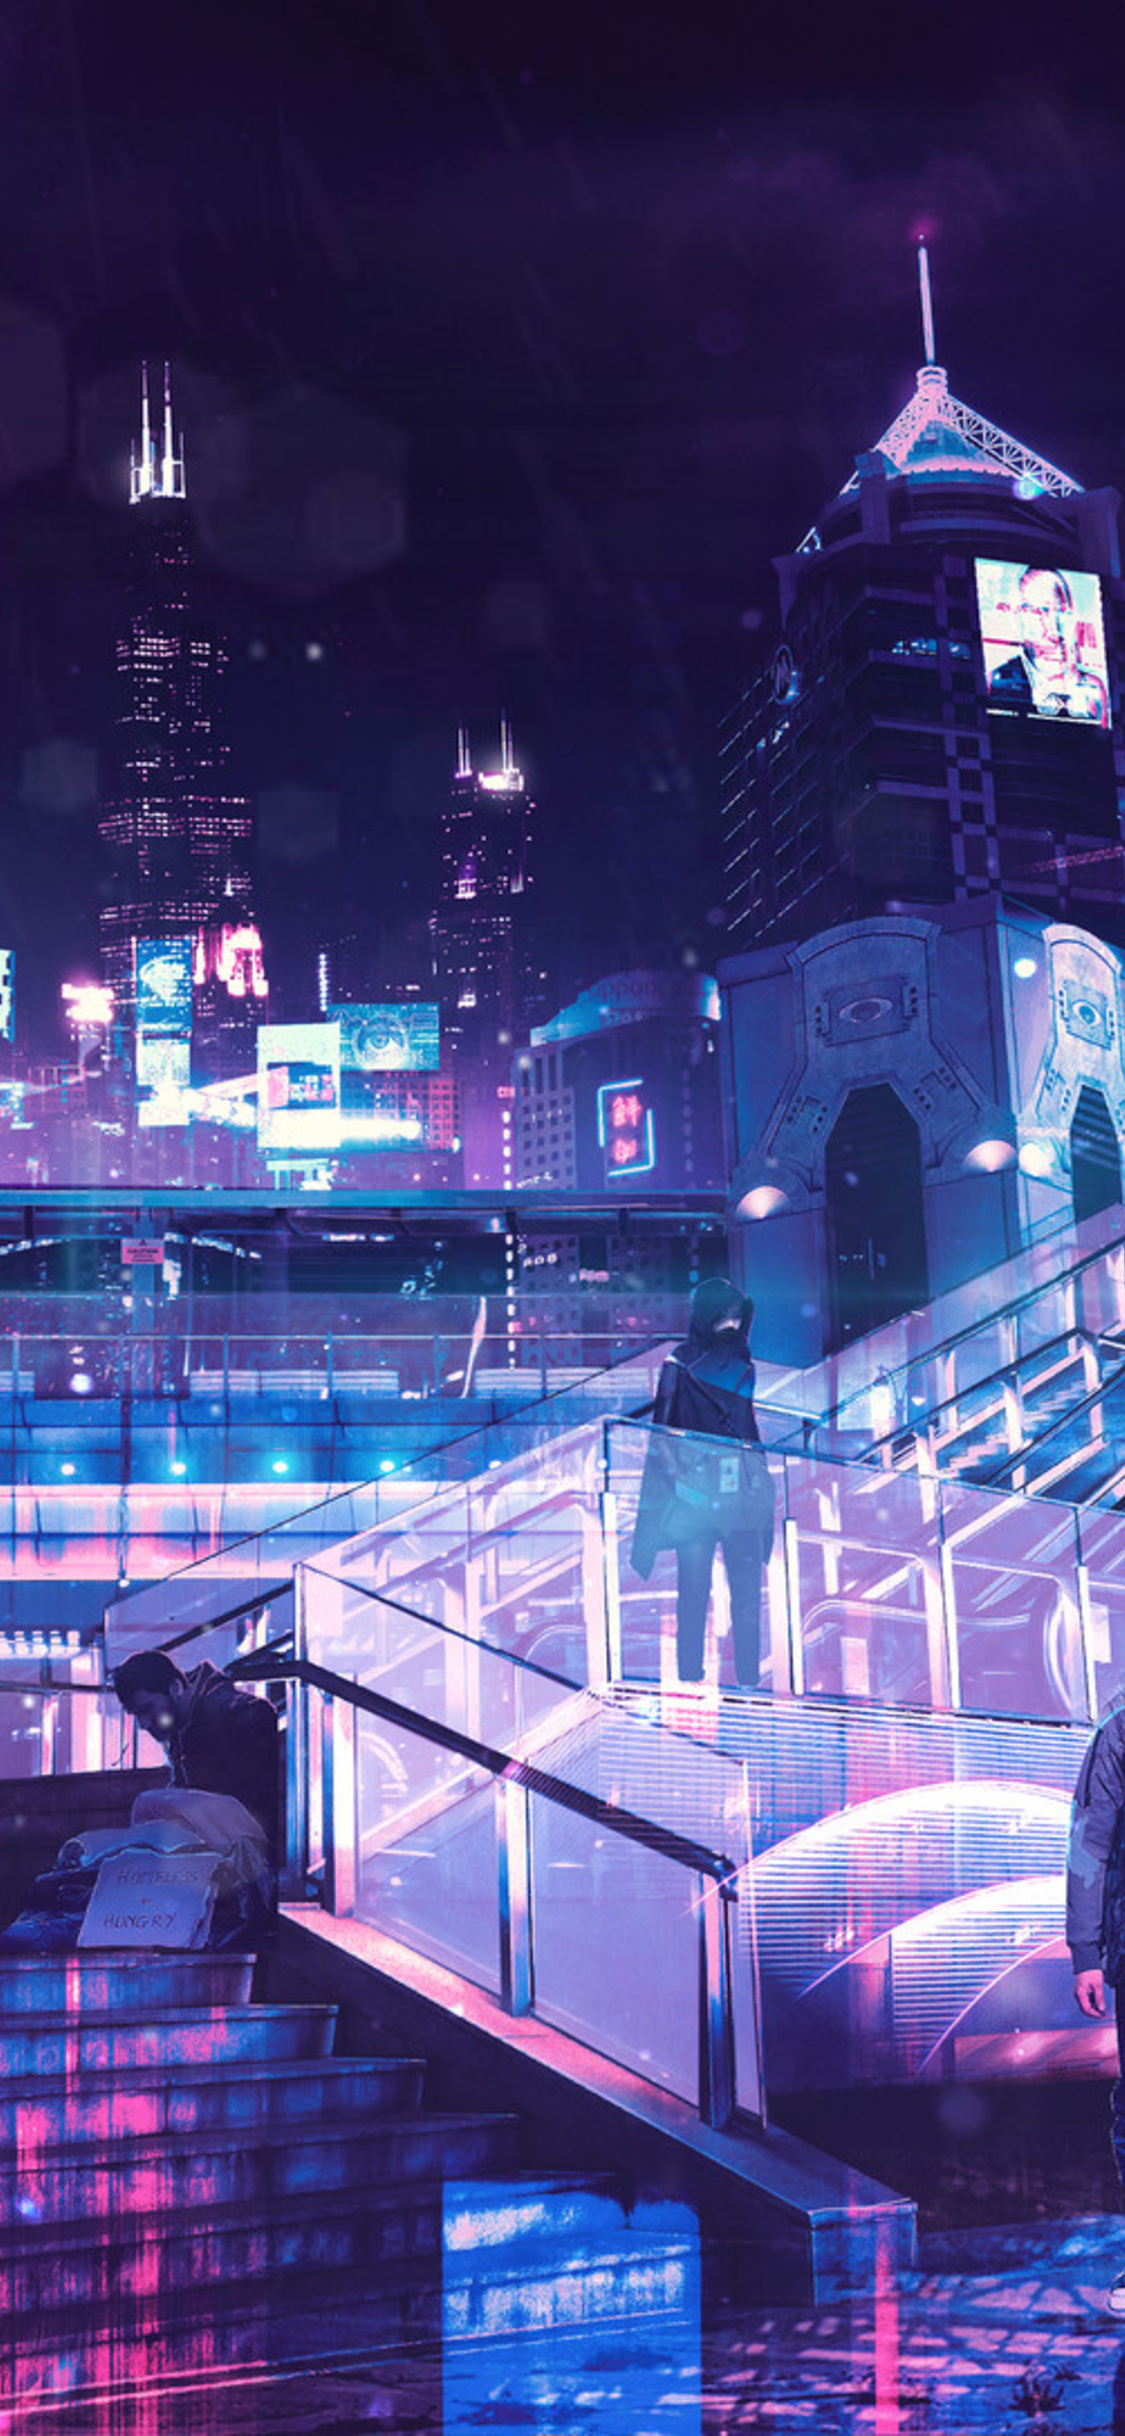 1125x2436 Cyberpunk Neon City Iphone Xs Iphone 10 Iphone X Hd 4k Wallpapers Images Backgrounds Photos And Pictures